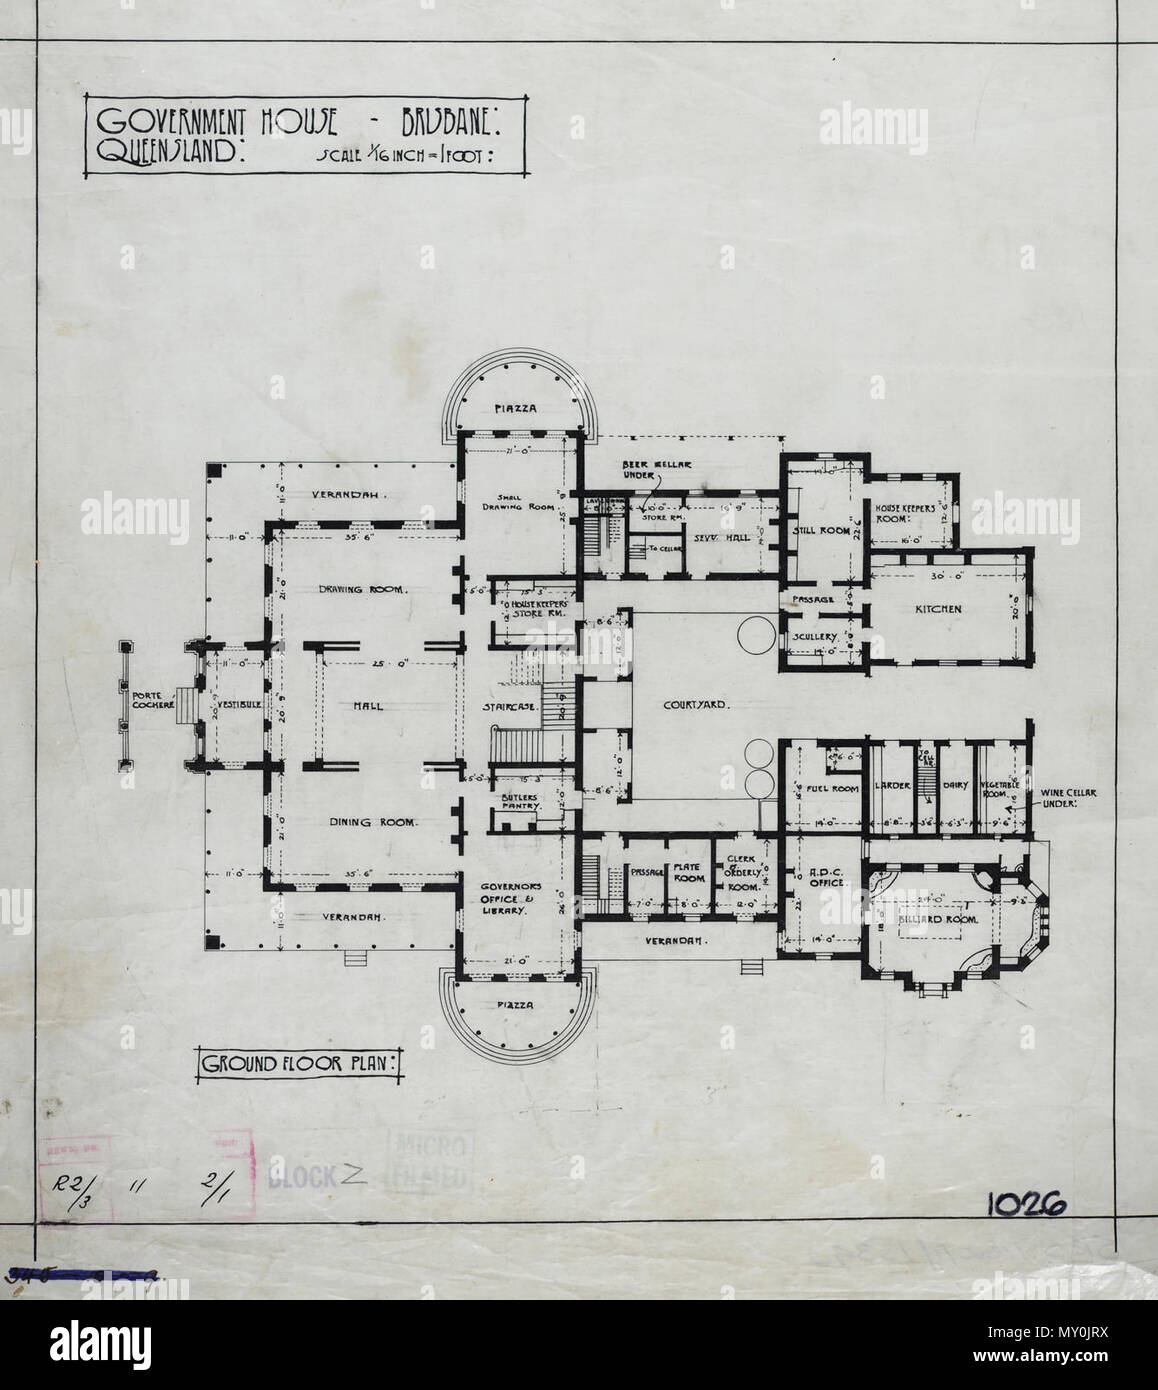 Ground Floor Plan of Government House, Brisbane, c 1940. Johann Heussler, a wealthy Brisbane merchant purchases 22 acres of land from the Government in 1862 and made plans to build a house there. Local architect Benjamin Backhouse designed a house in 1865, to be constructed from stone excavated on site combined with a cement and lime mixture.  The Heussler family lived at Fernberg from 1865 until 1872 when the high cost of upkeep forces foreclosure on the property by the mortgagee.  Sir Arthur Palmer, Premier of Queensland (1870-1874), and later Lieutenant Governor resided in Fernberg from 187 - Stock Image